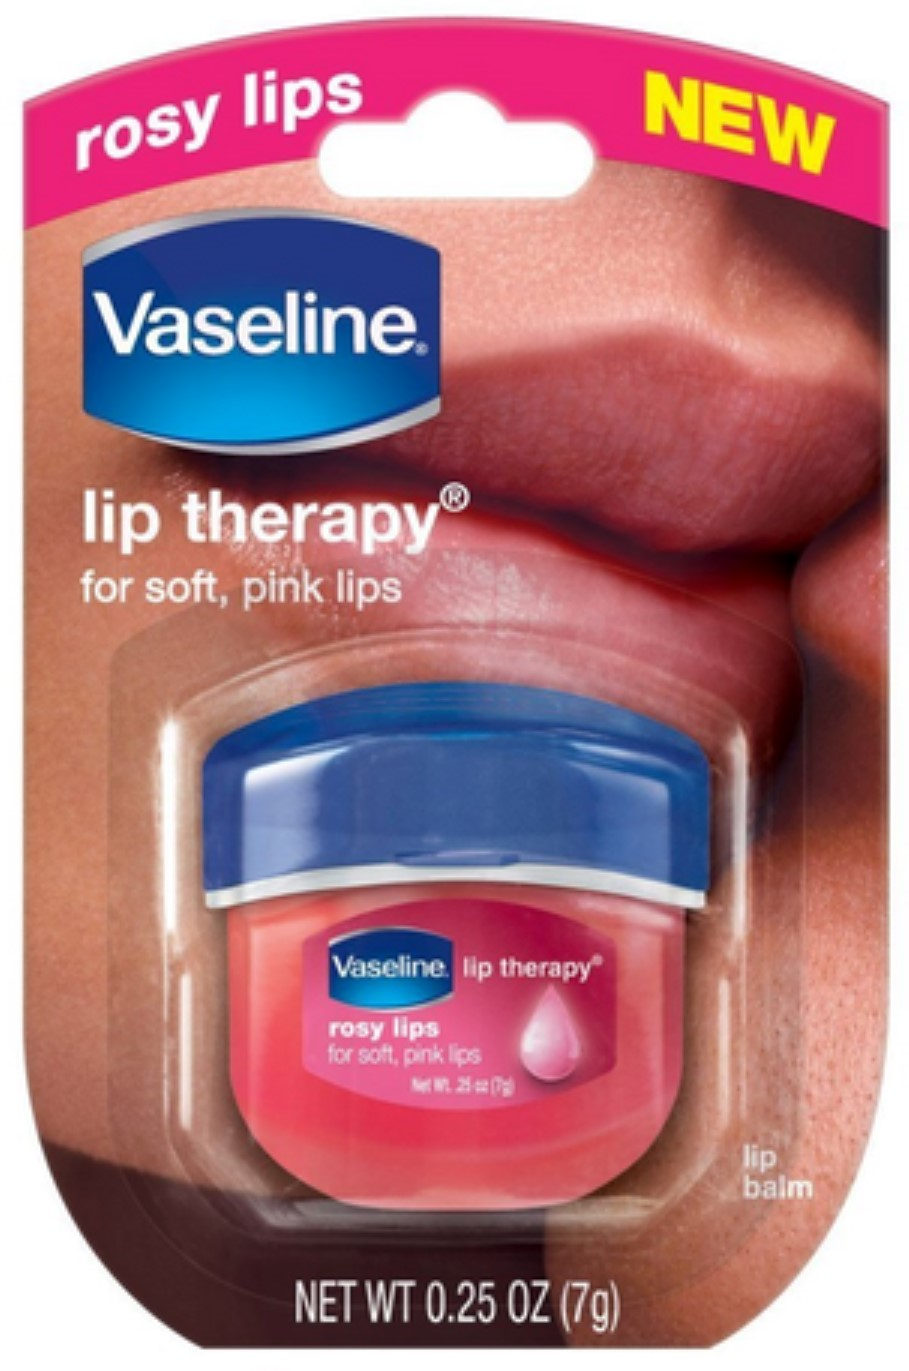 Vaseline Lip Therapy, Rosy Lips 1 ea (Pack of 2) NatraBio, Acne Relief, 1 fl oz(pack of 2)